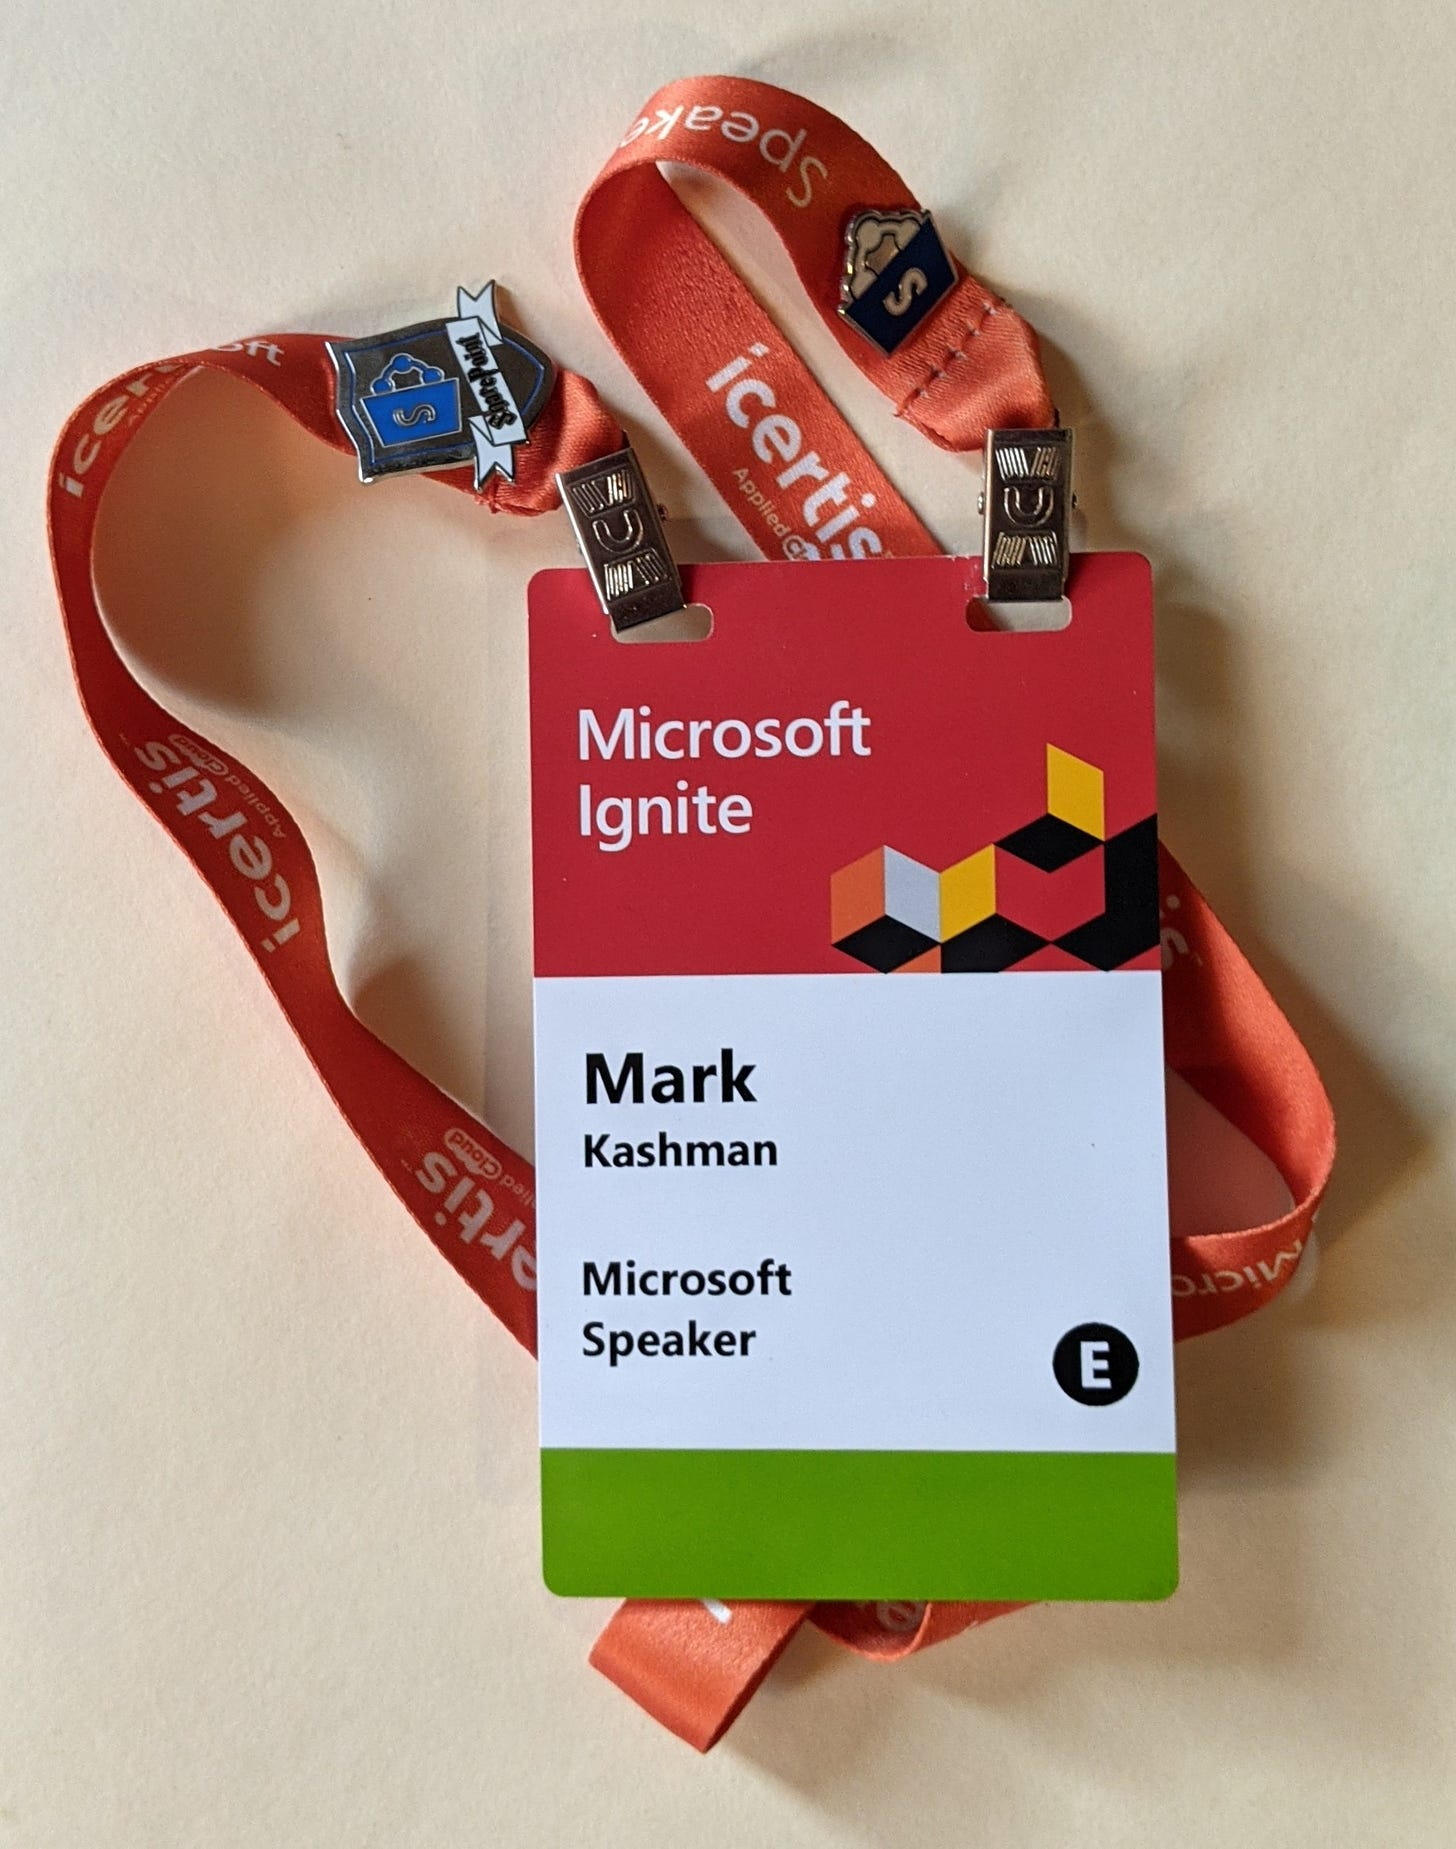 Microsoft Ignite 2019 event badge with SharePoint pins.